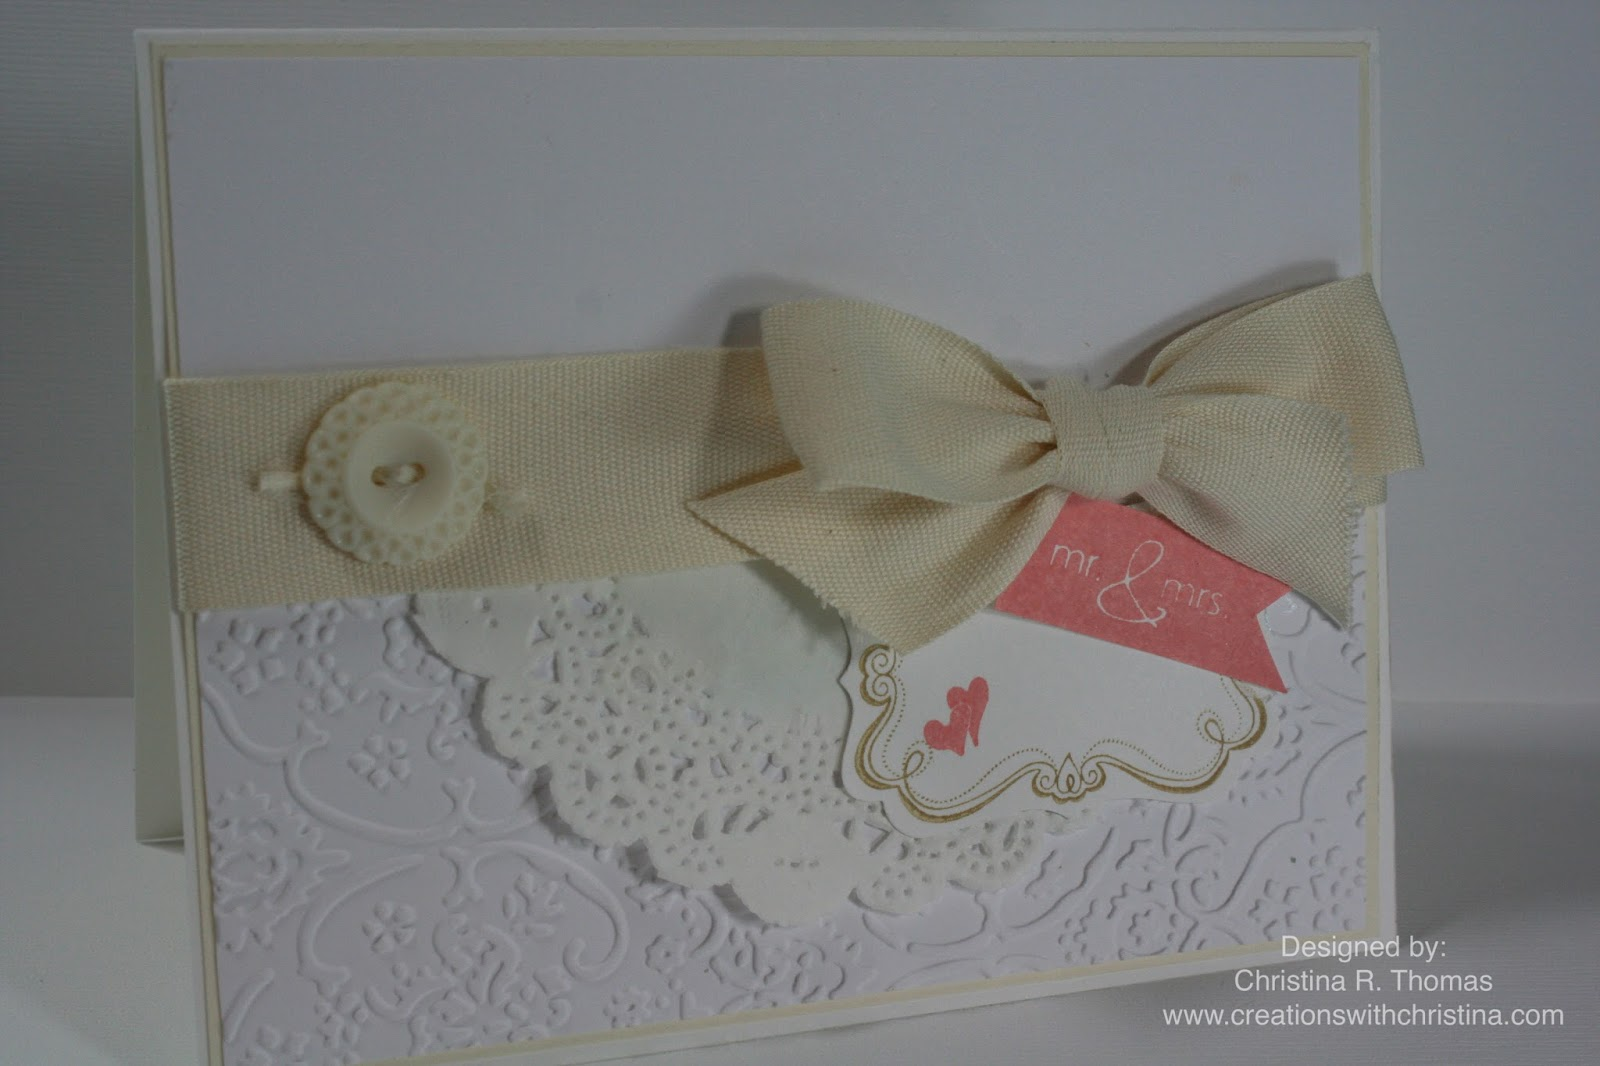 Wedding card and new items in the clearance rack | Creations with